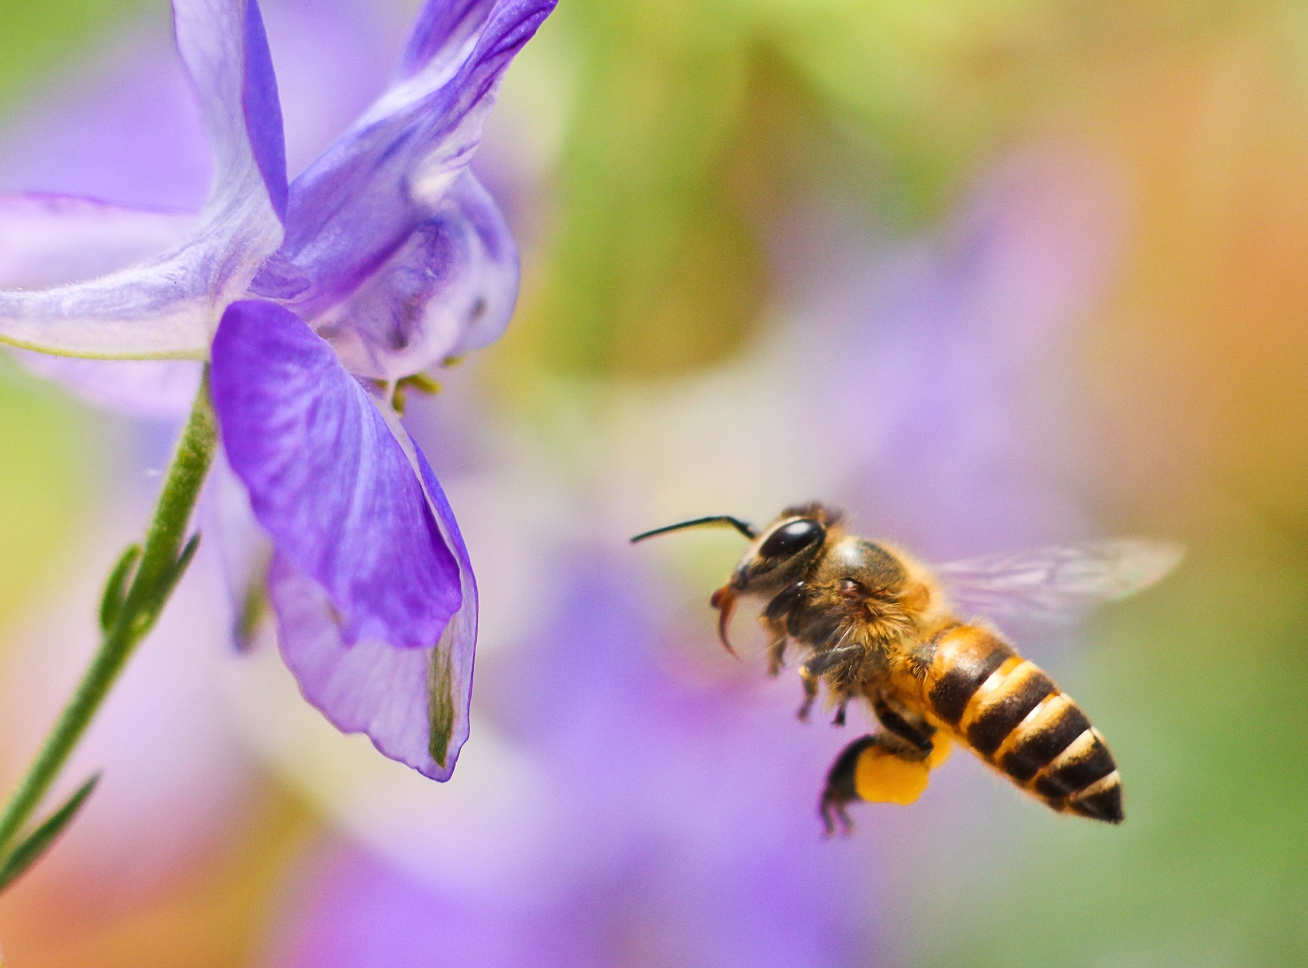 Photo of a bee about to land on a purple flower